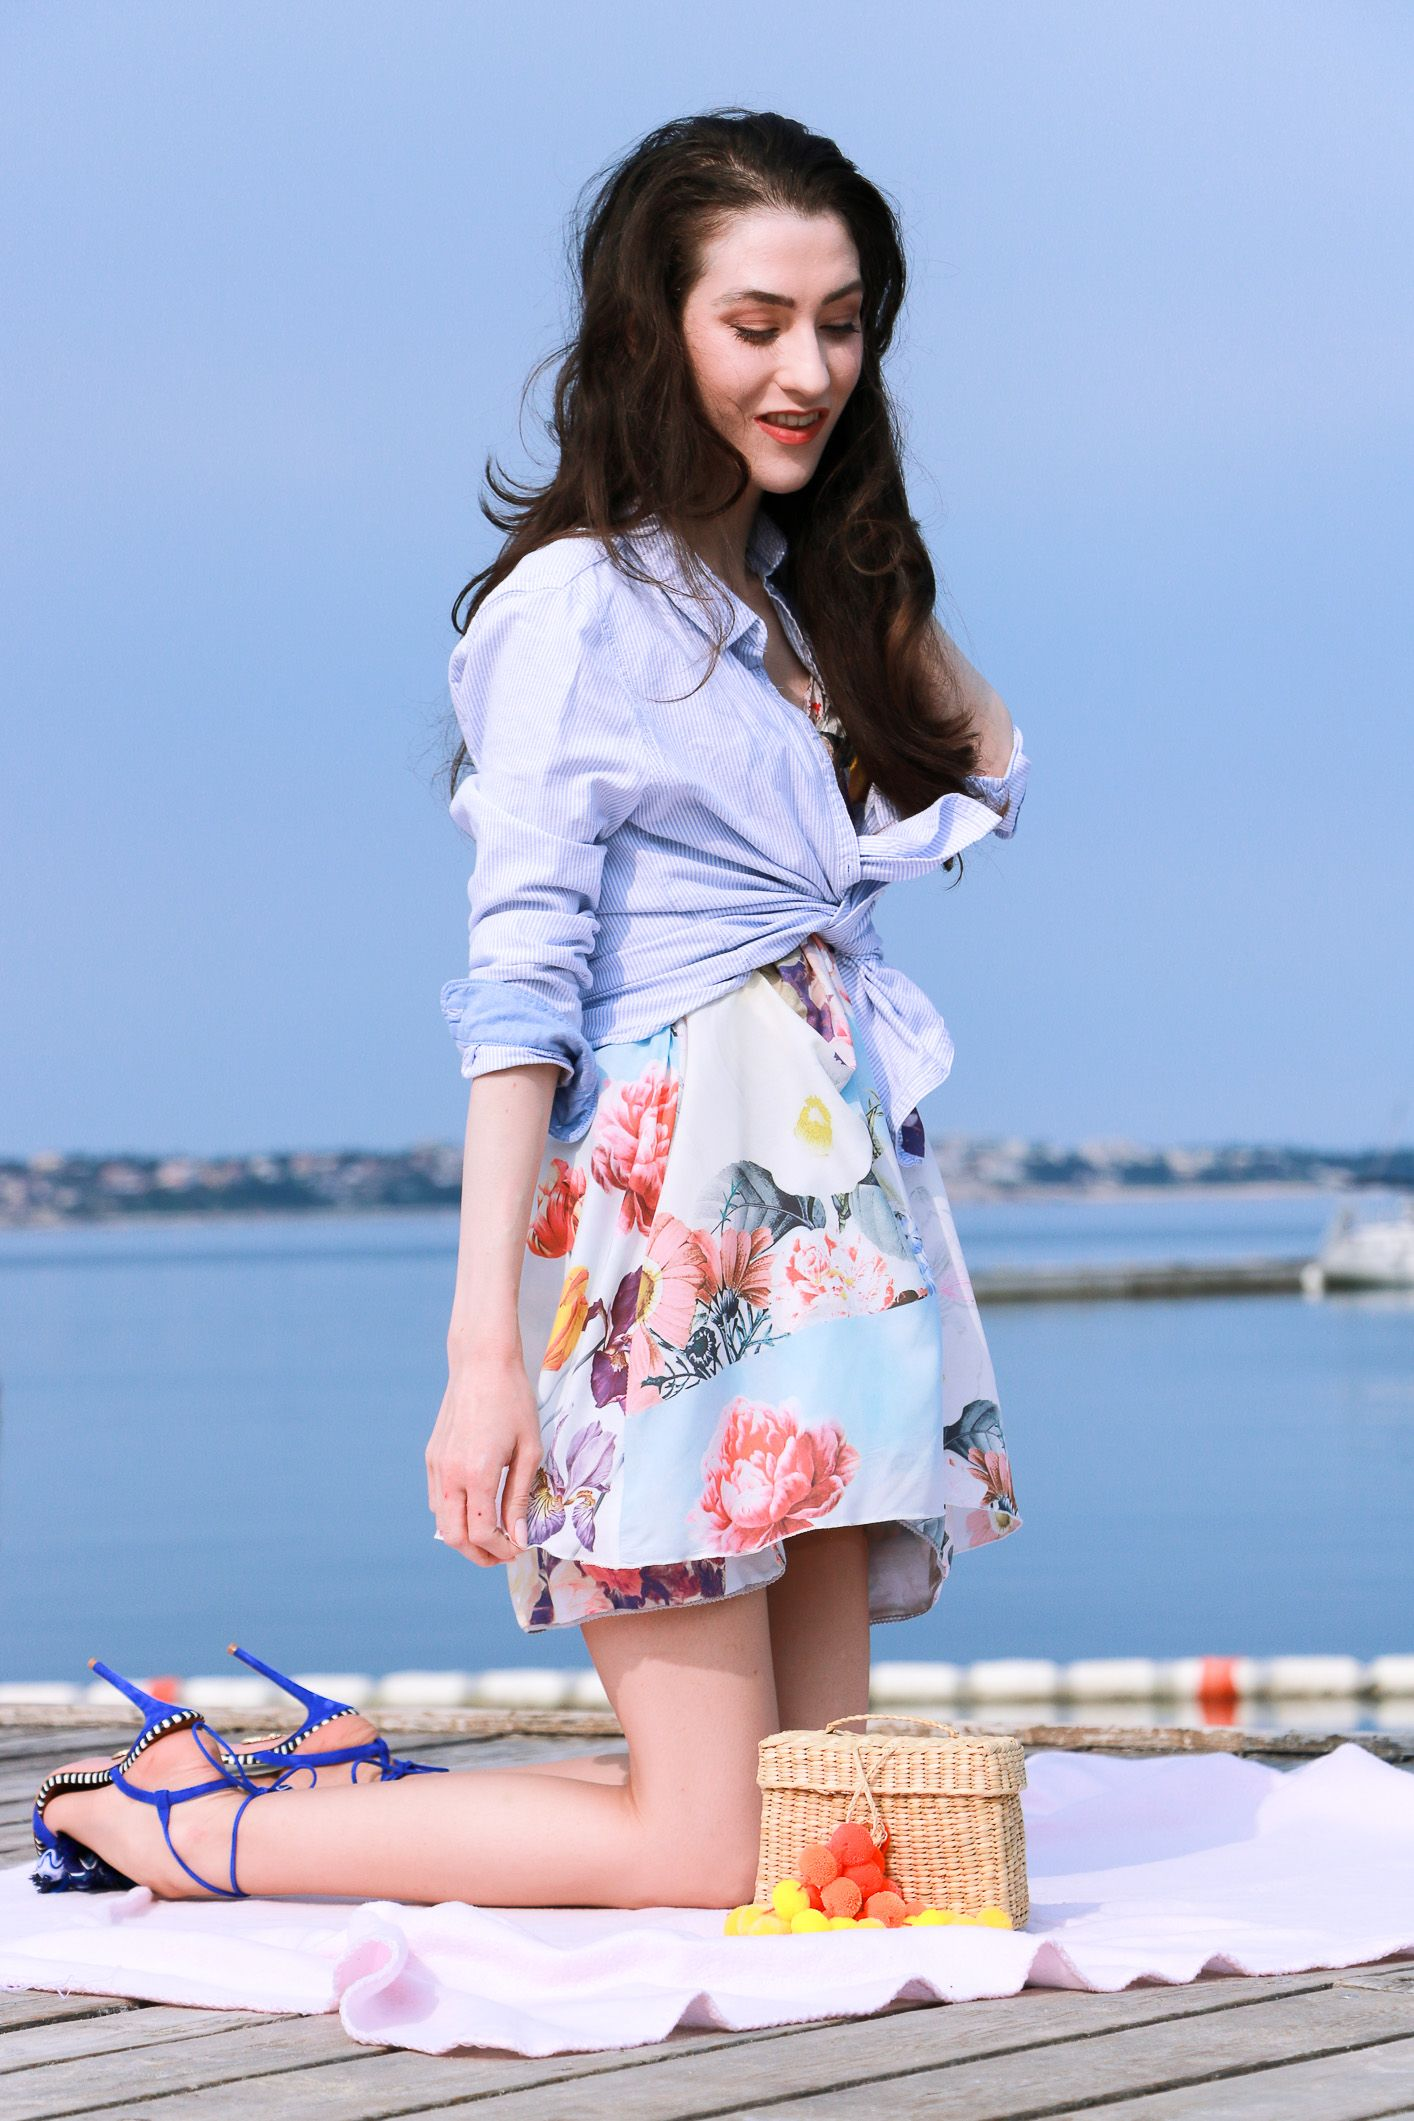 This Seaside Summer Picnic Outfit Is a Guarantee for a ...